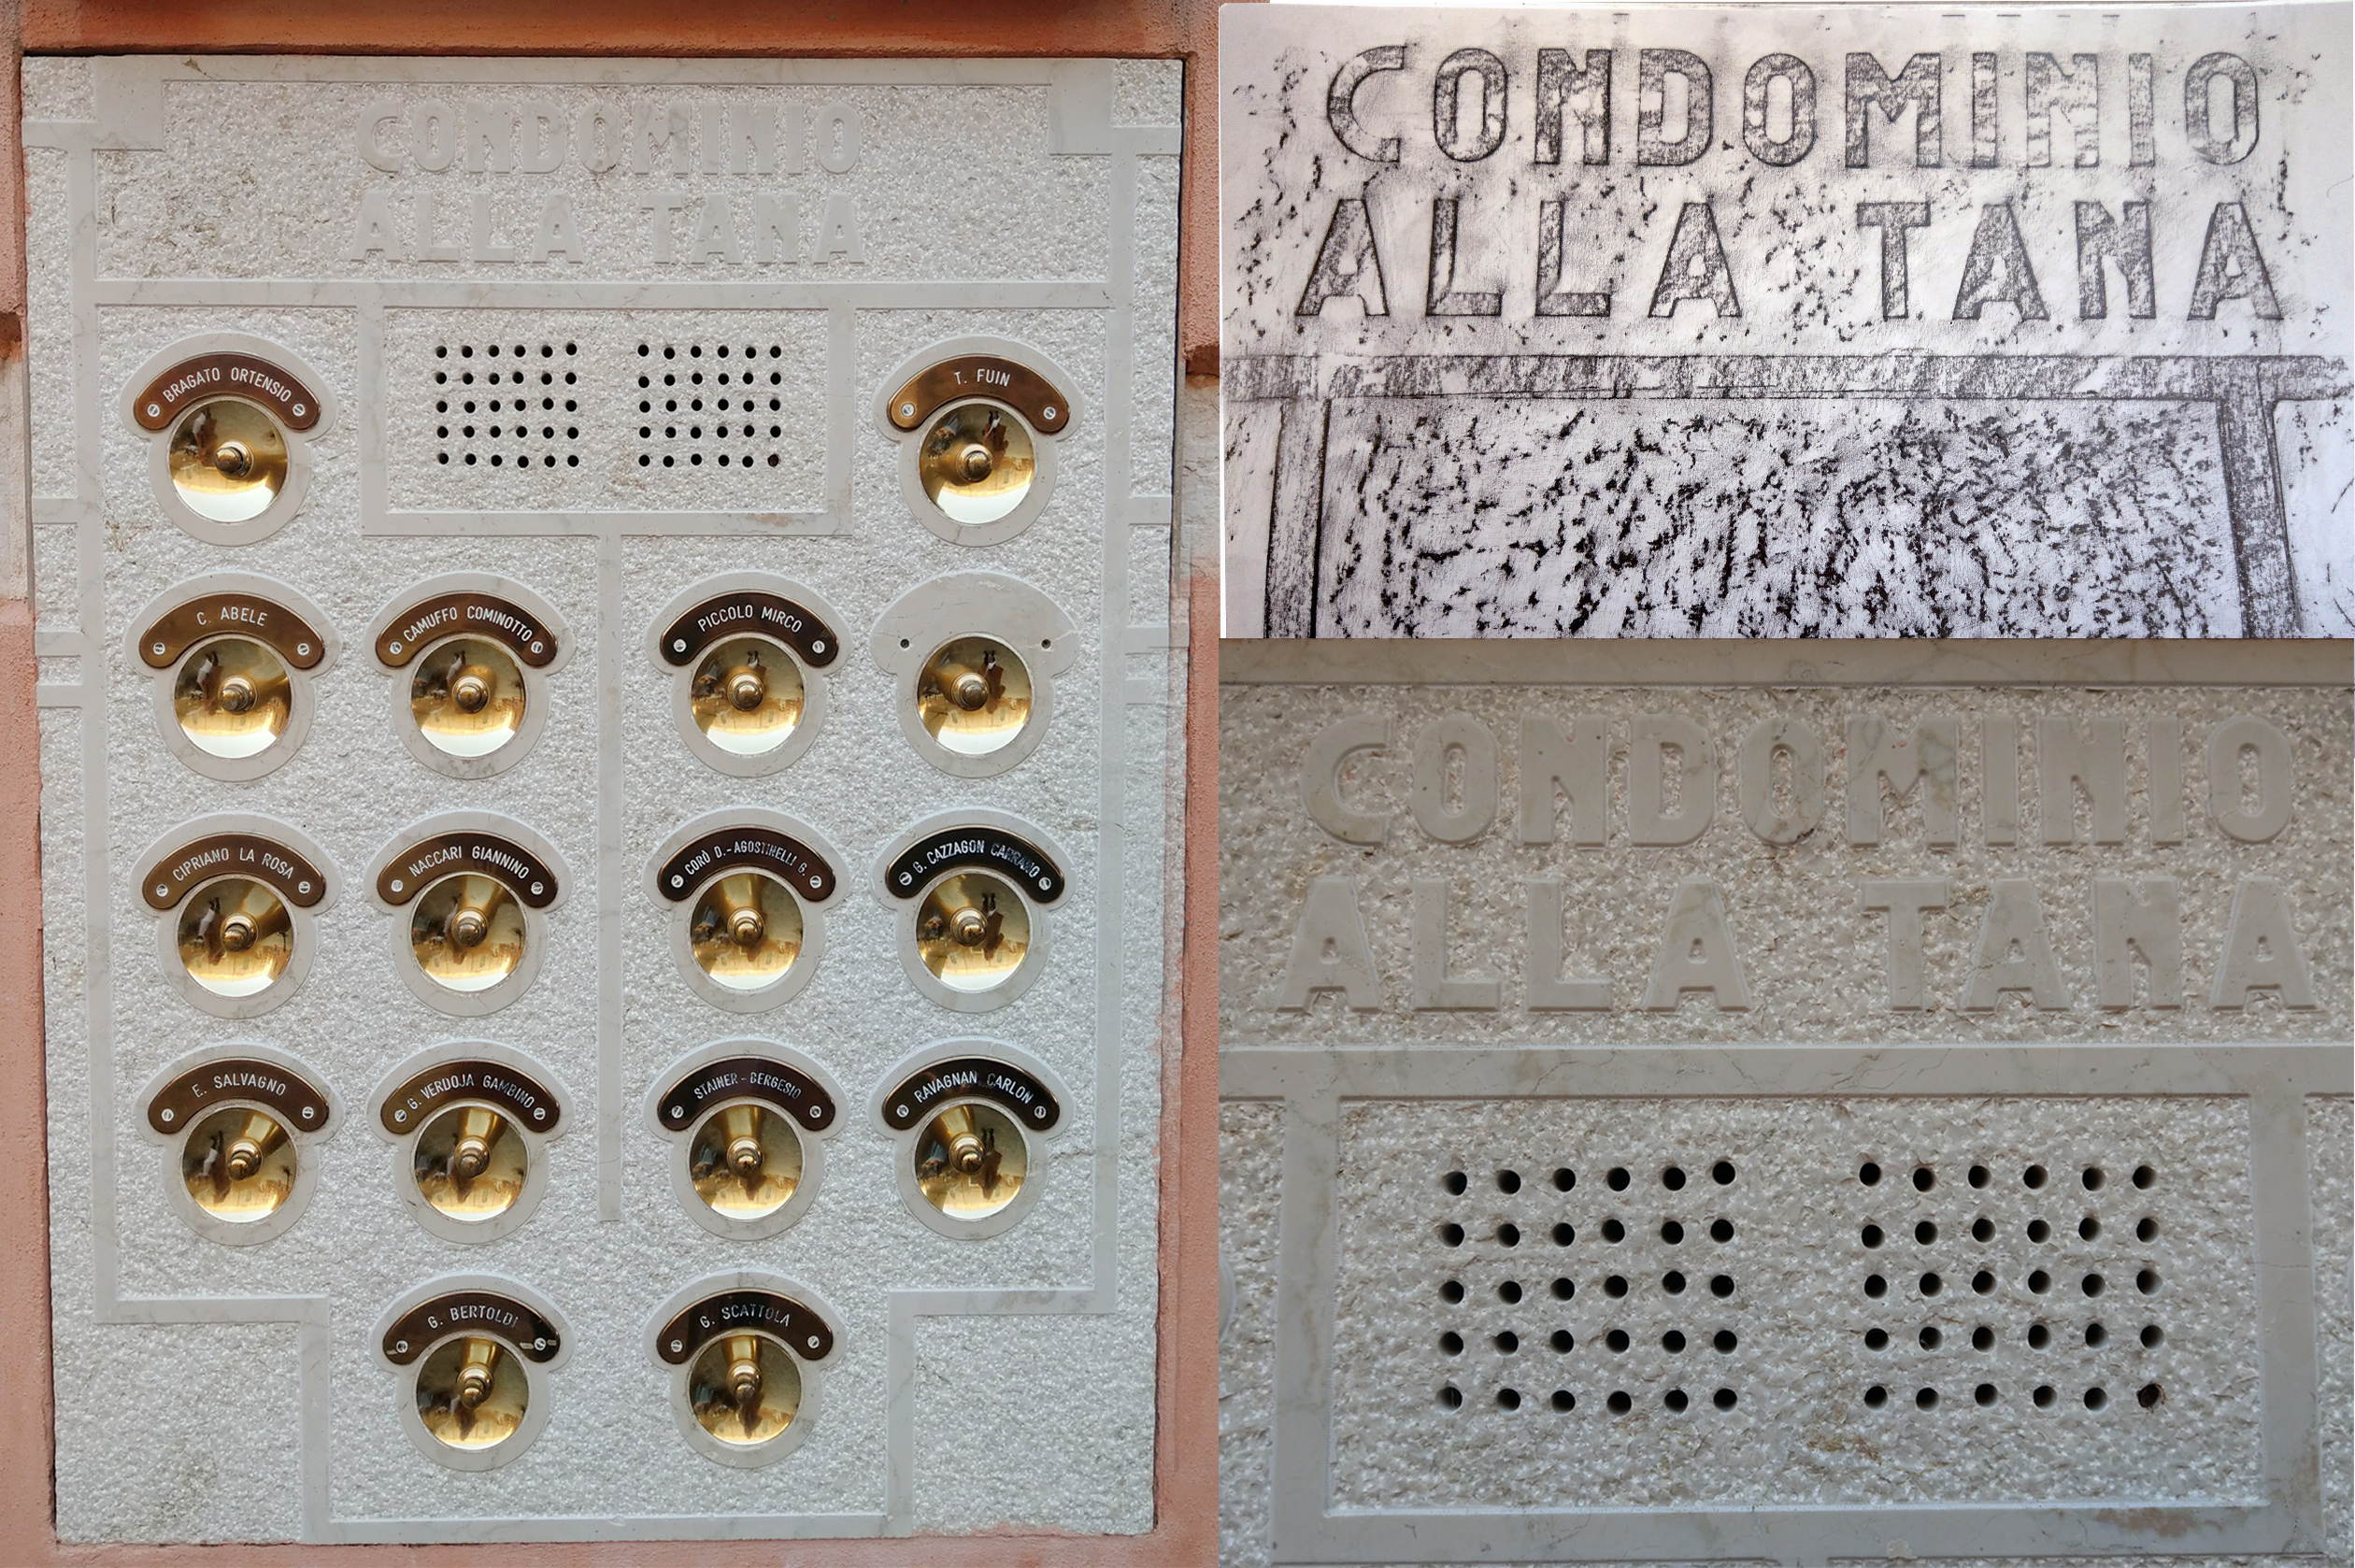 """CONDOMINIO ALLA TANA"", in English, meant ""a building shared by different families at a street named TANA."". The above 16 gold bells were arranged in symmetry form, with 8 belles on the either sides."